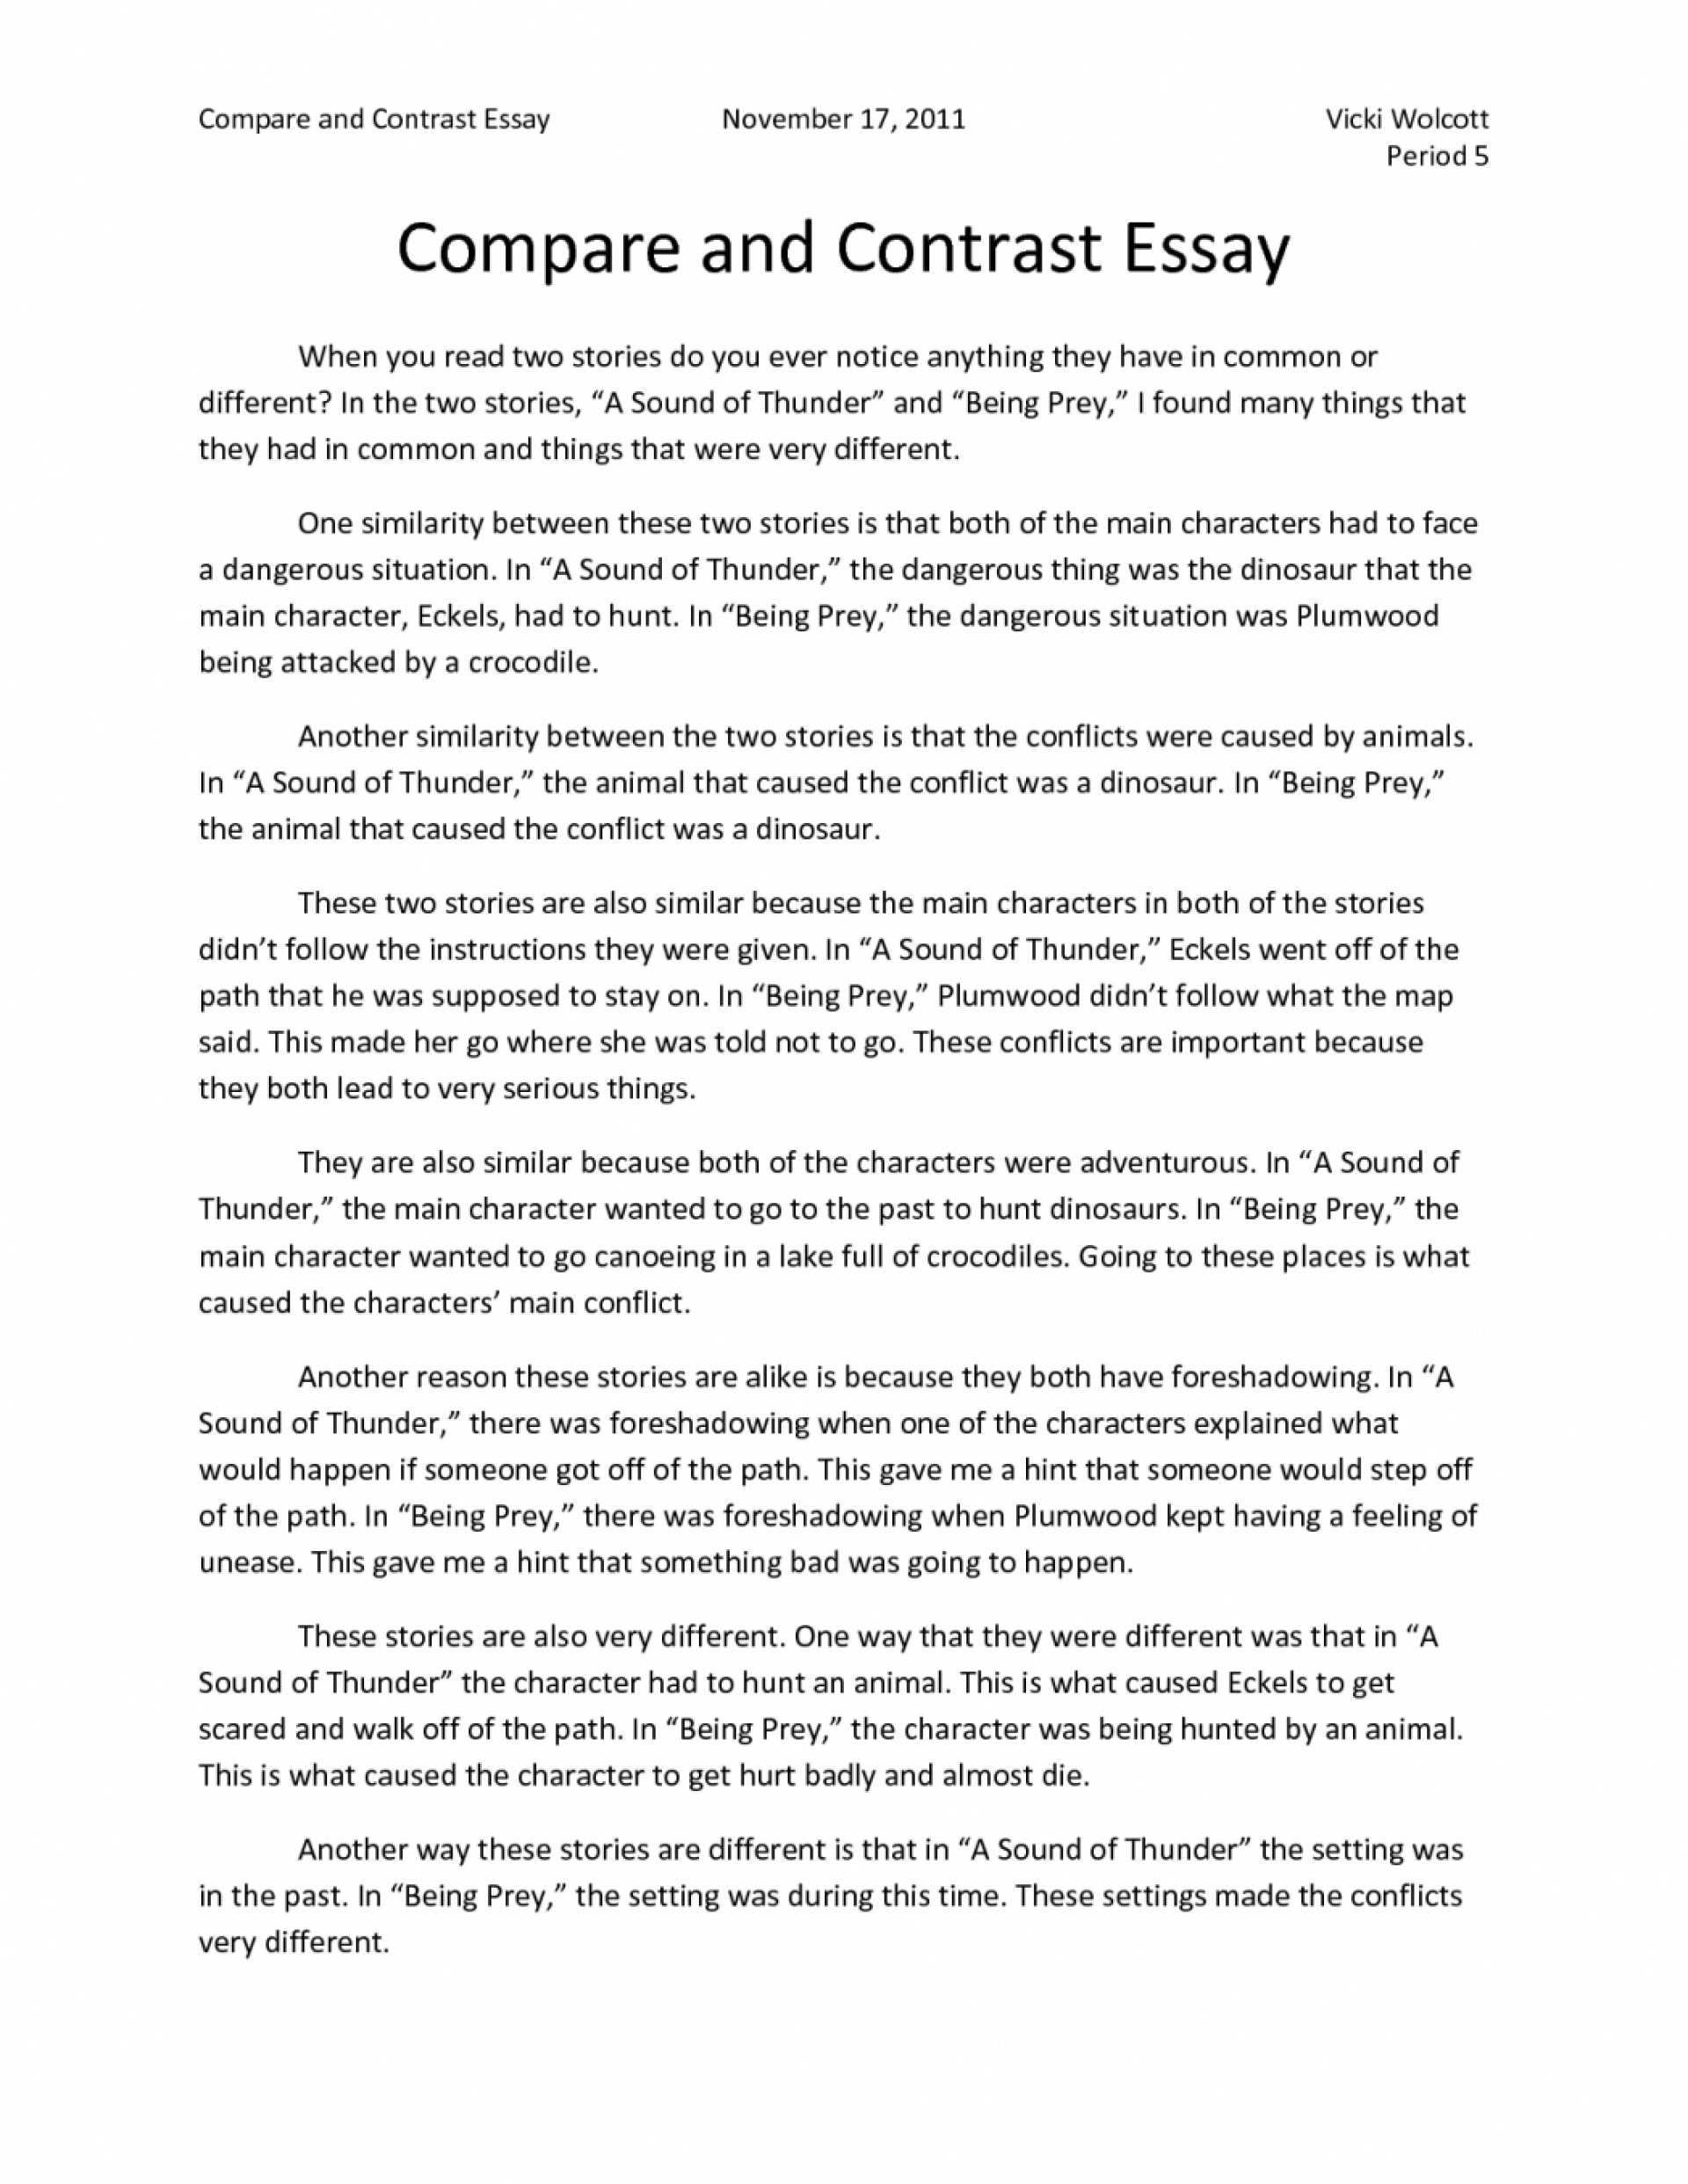 002 Argumentative Essay Topics For Proposal On Immigration Laws Compare And Contrast 1048x1356 Stupendous 1920